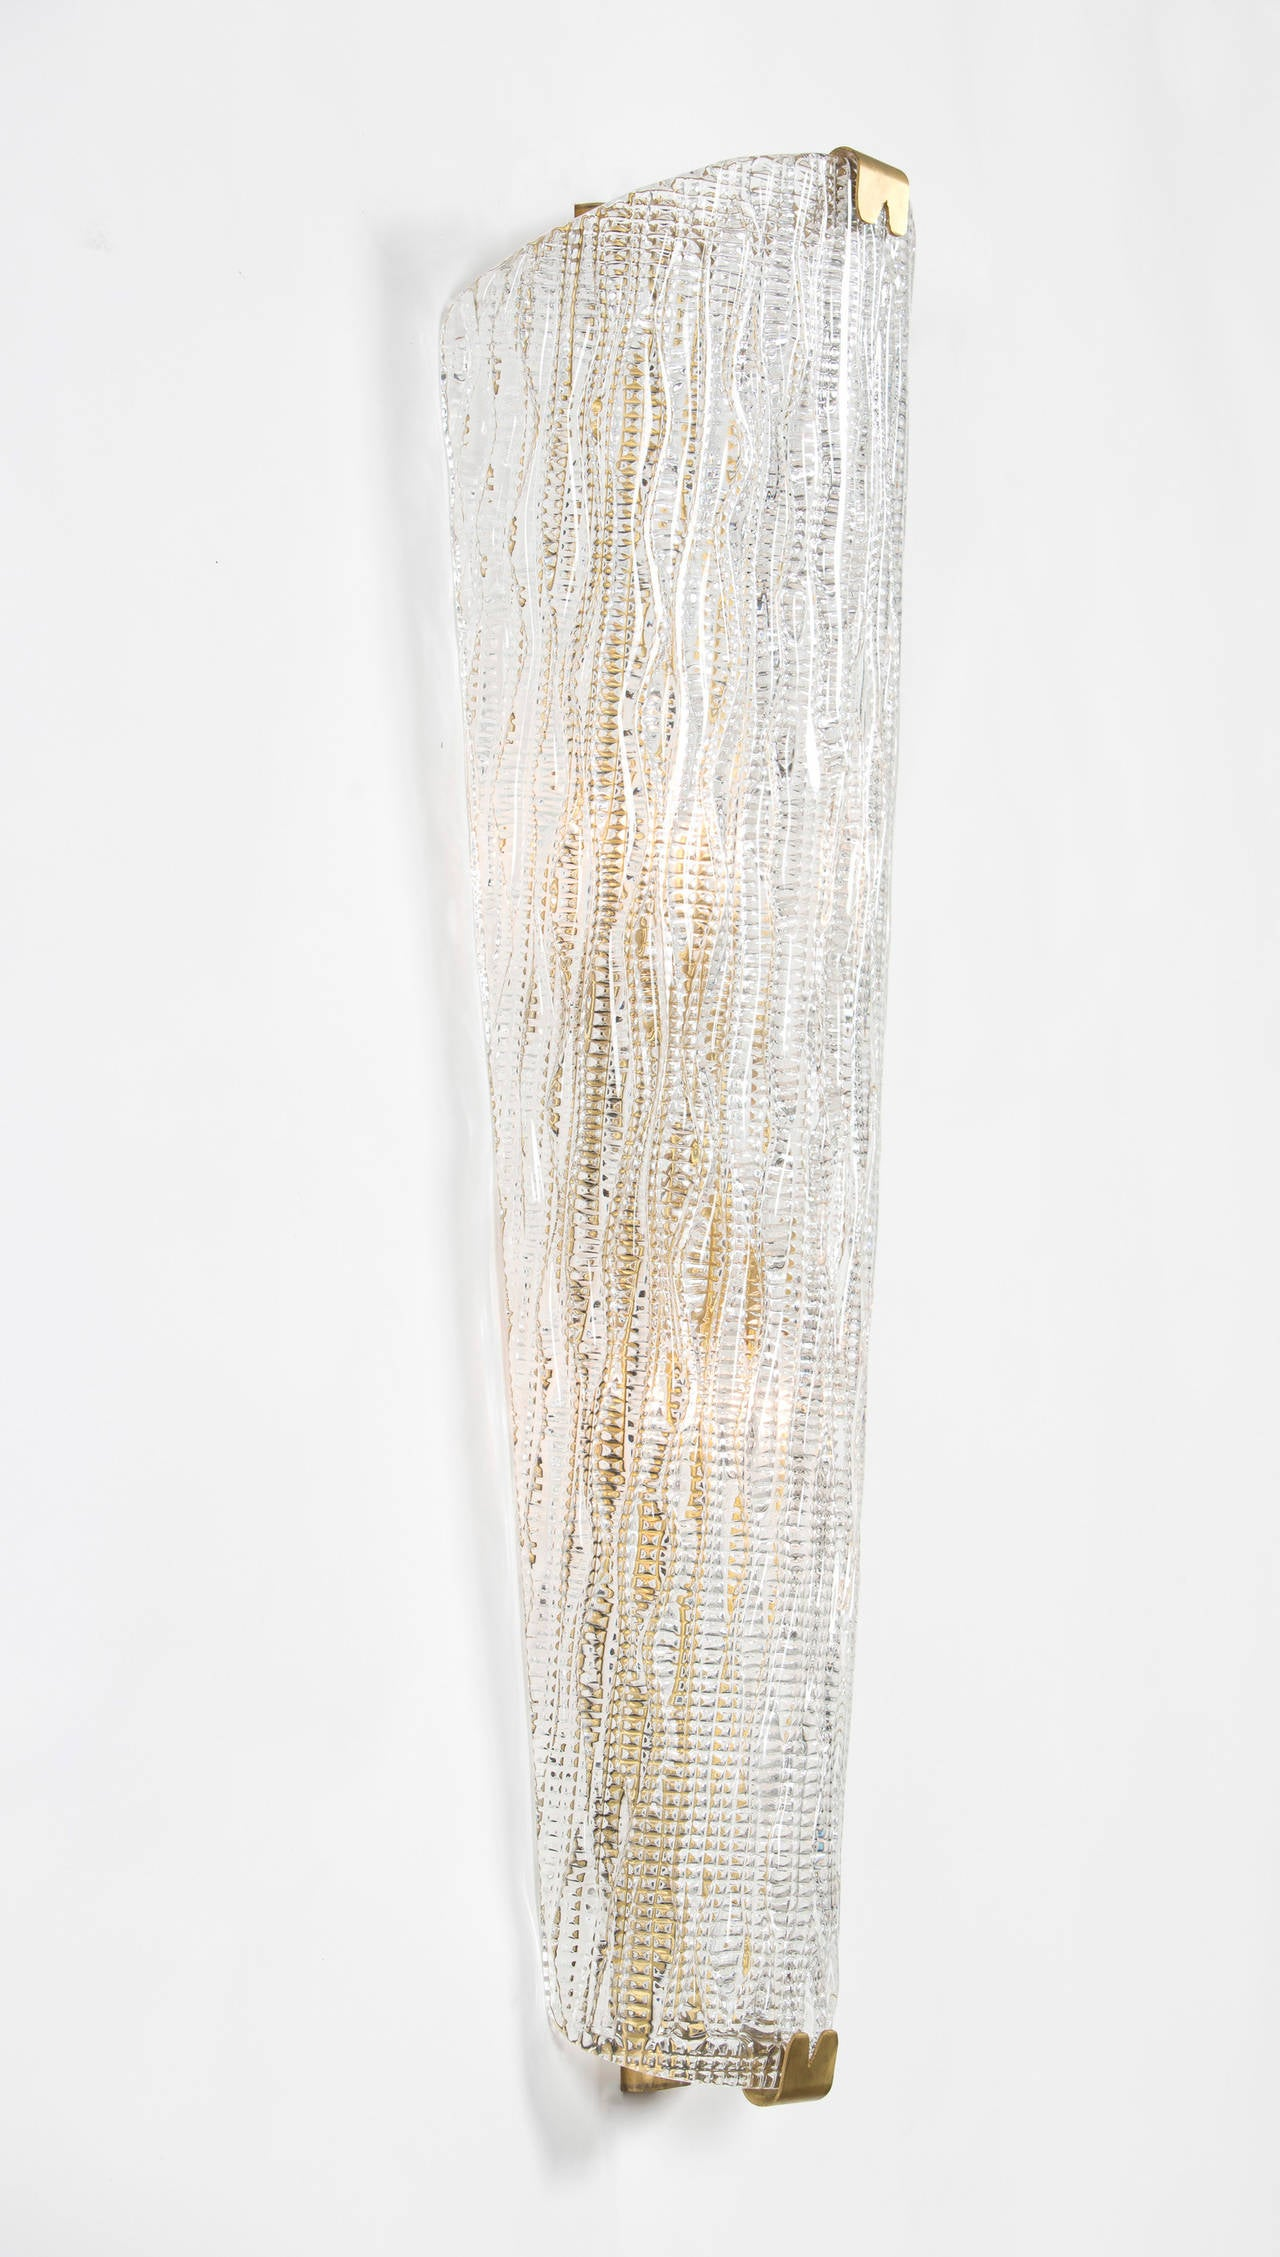 Wall Sconces With Glass : Murano Glass Wall Sconces by Barovier For Sale at 1stdibs